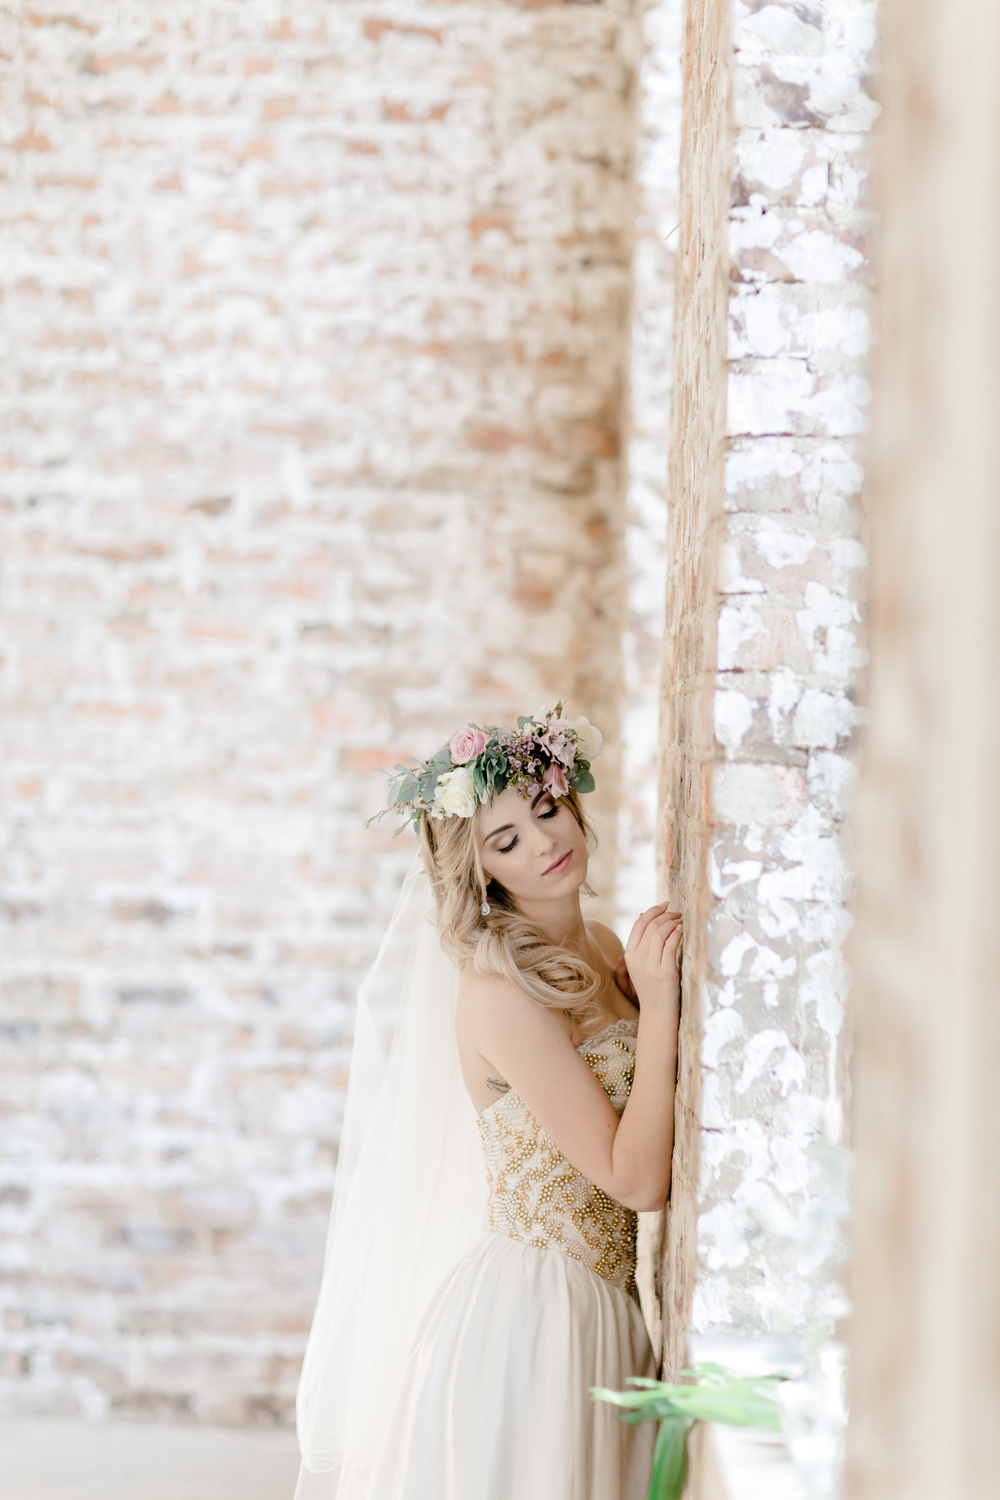 Nathan Zia Lace on Timber wedding077.jpg